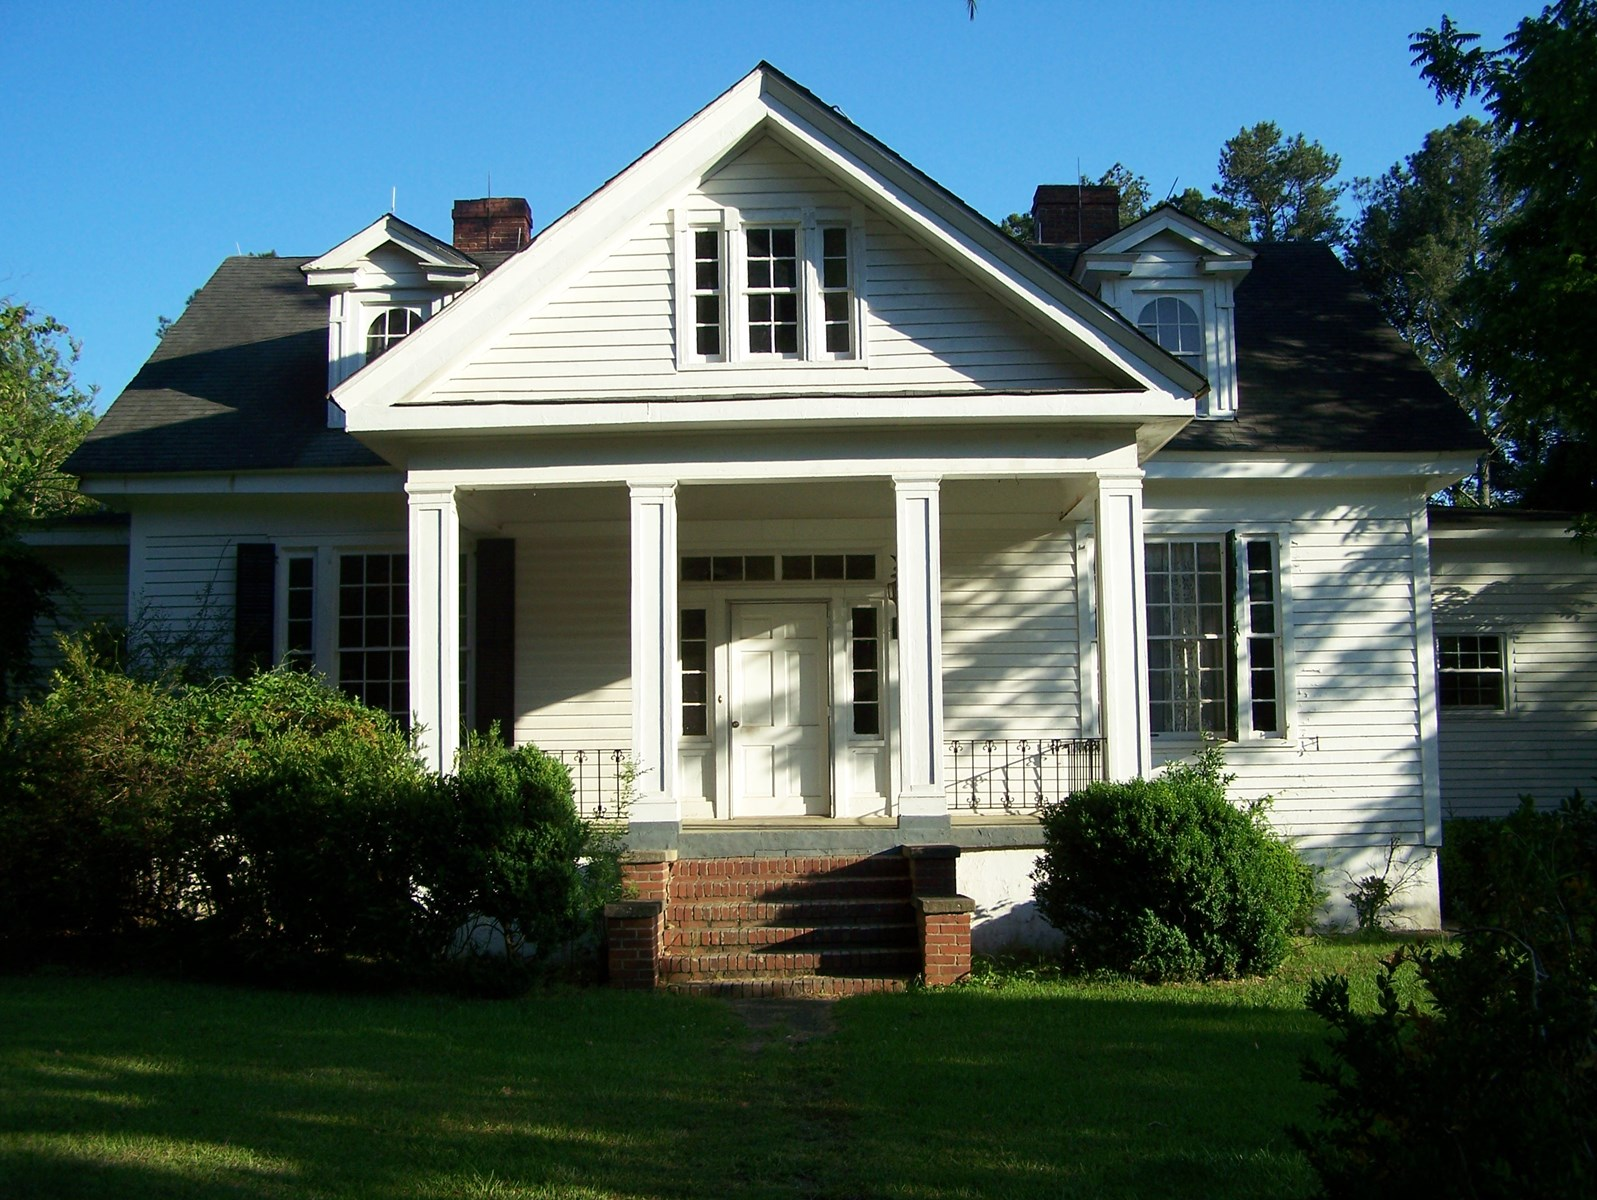 Own the Home of South Carolina's First Congresswoman.